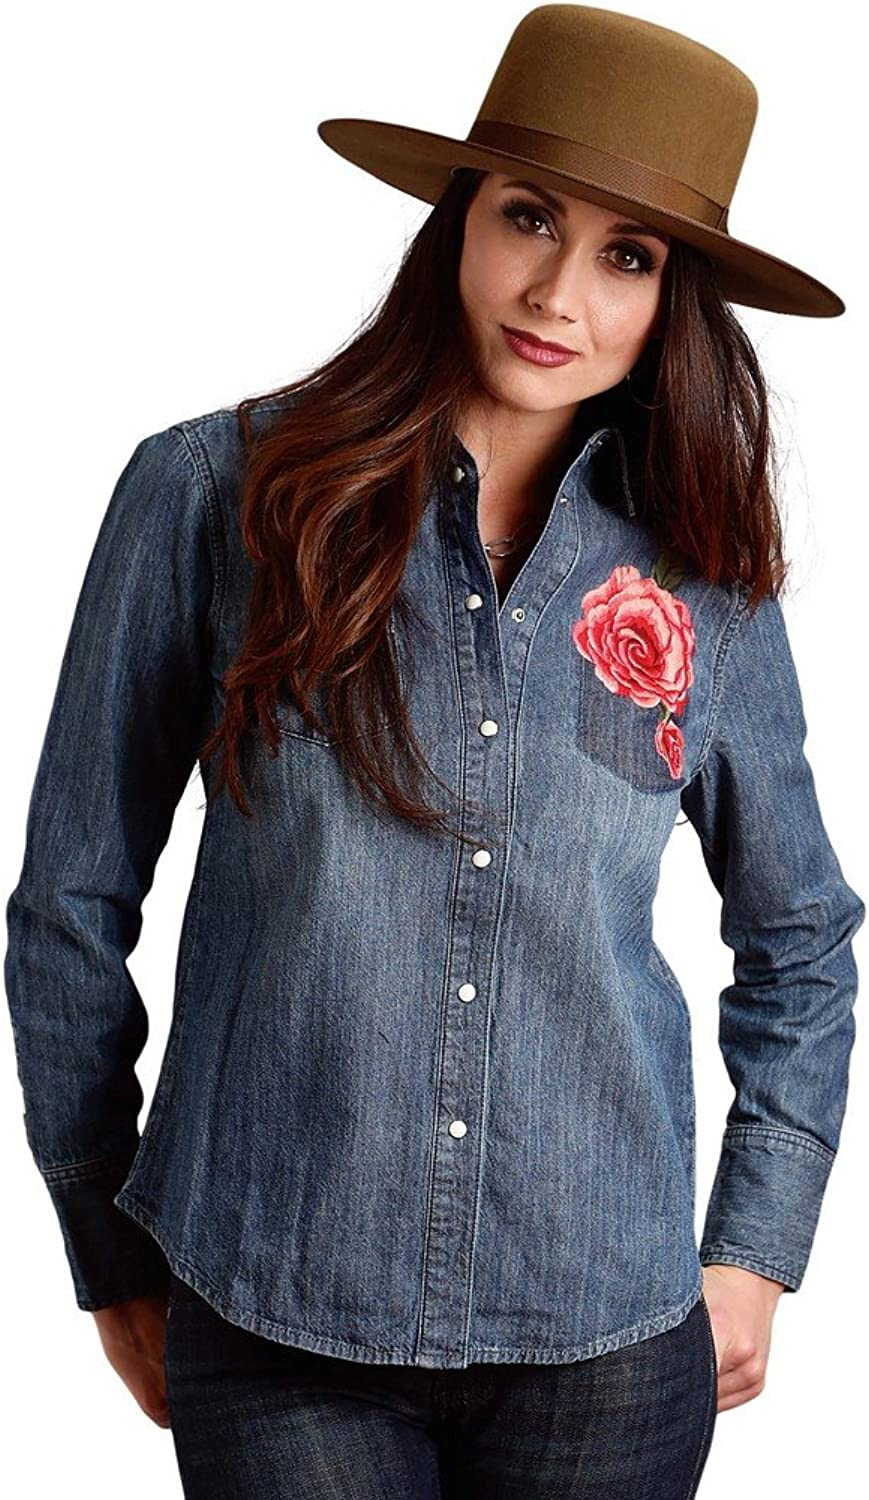 Stetson Floral Embroiderd Denim Shirt